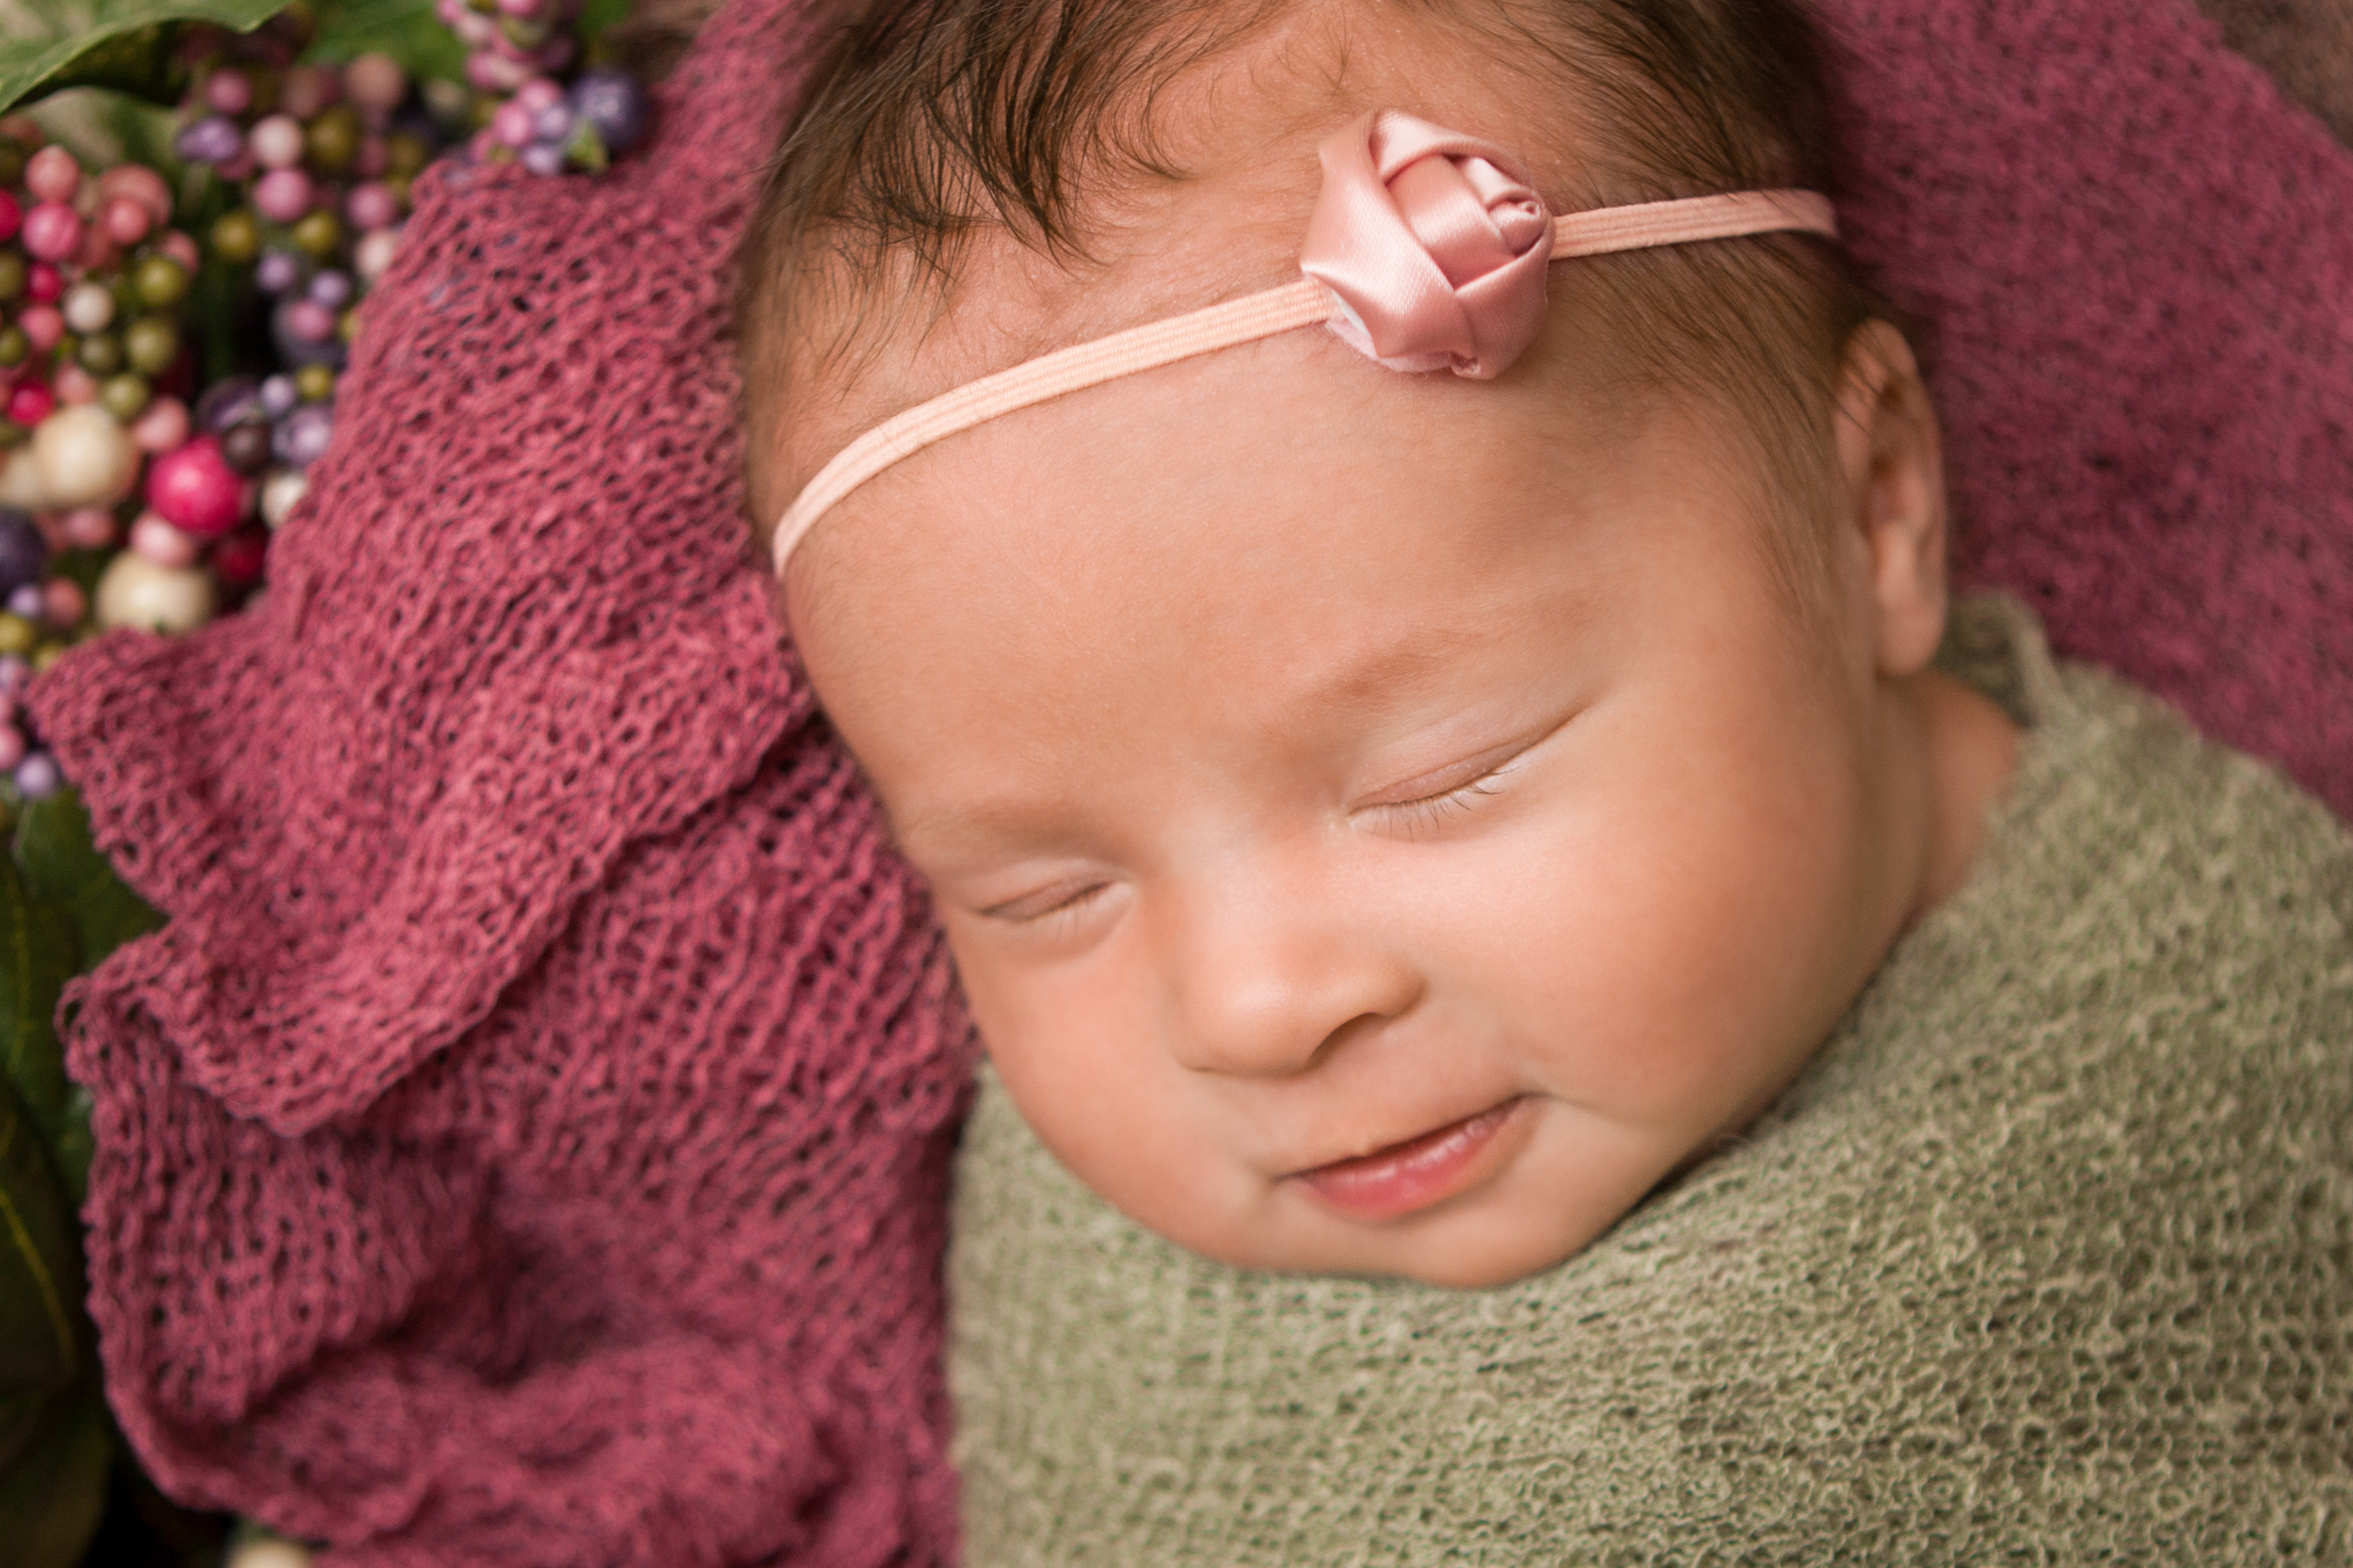 Newborn baby girl sleeping  smile spring photos, wrapped in green knit stretch wrap, spring wreath, white wood floor backdrop.